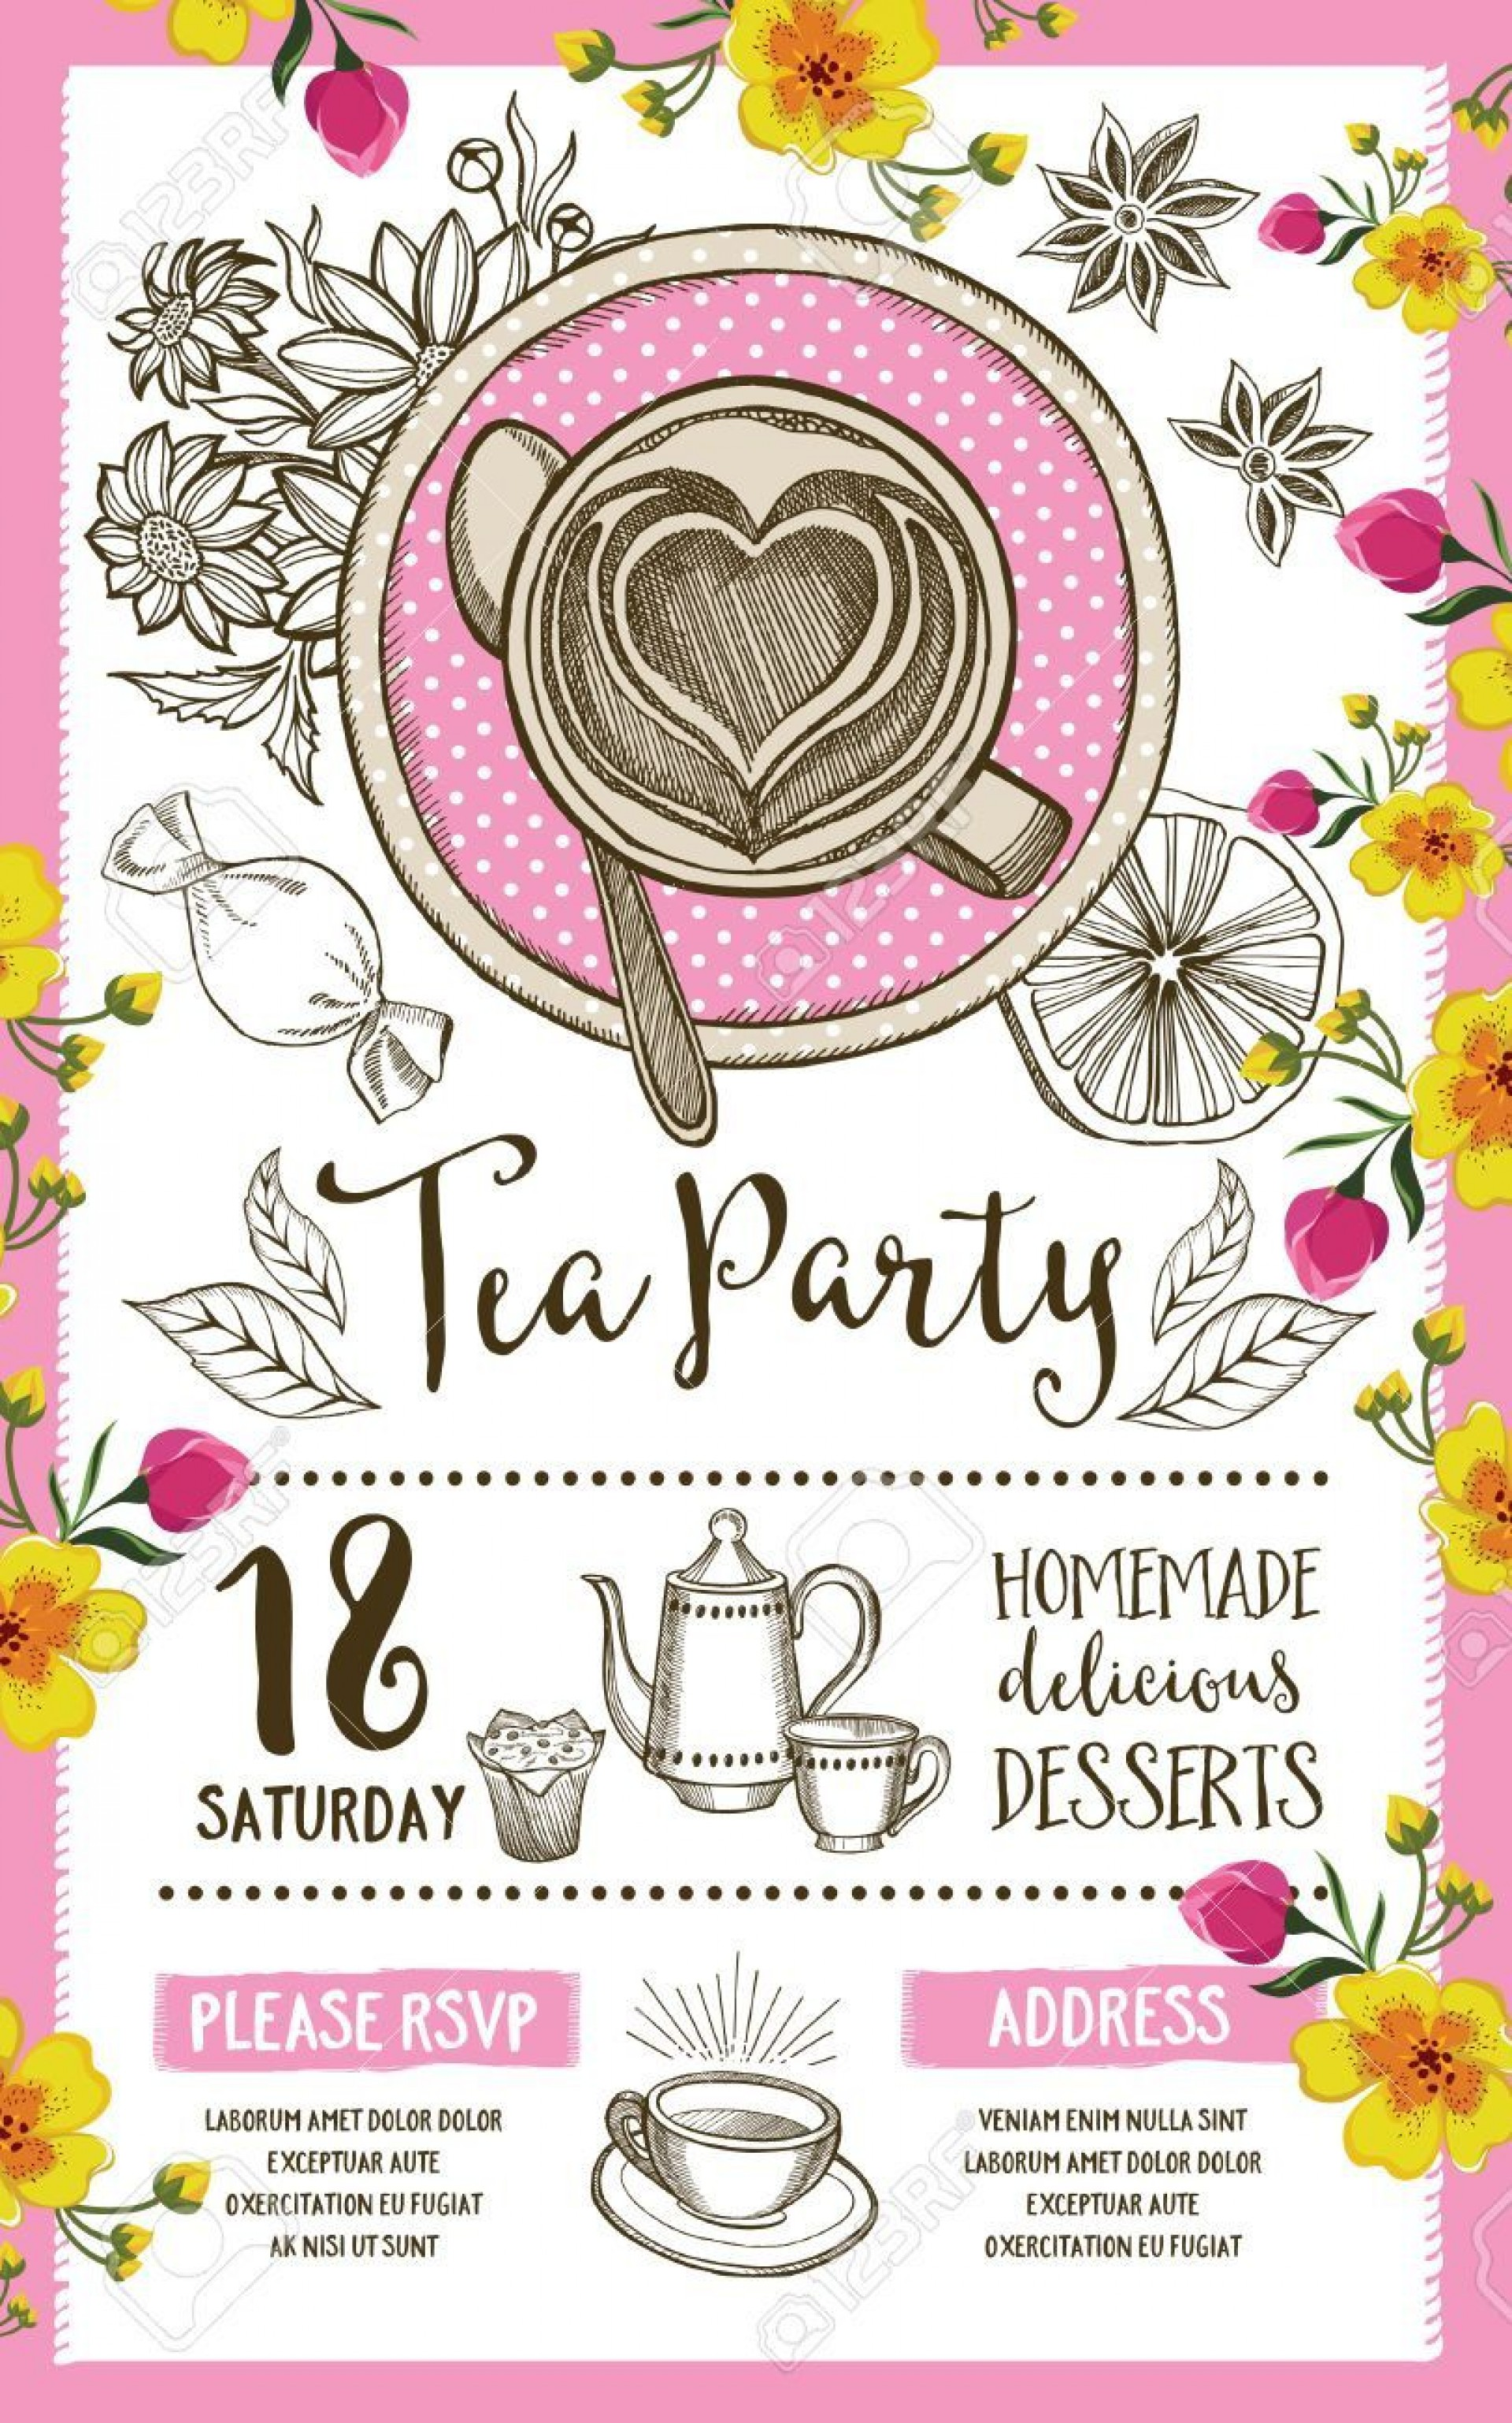 004 Wonderful Tea Party Invitation Template Inspiration  Online Letter1920